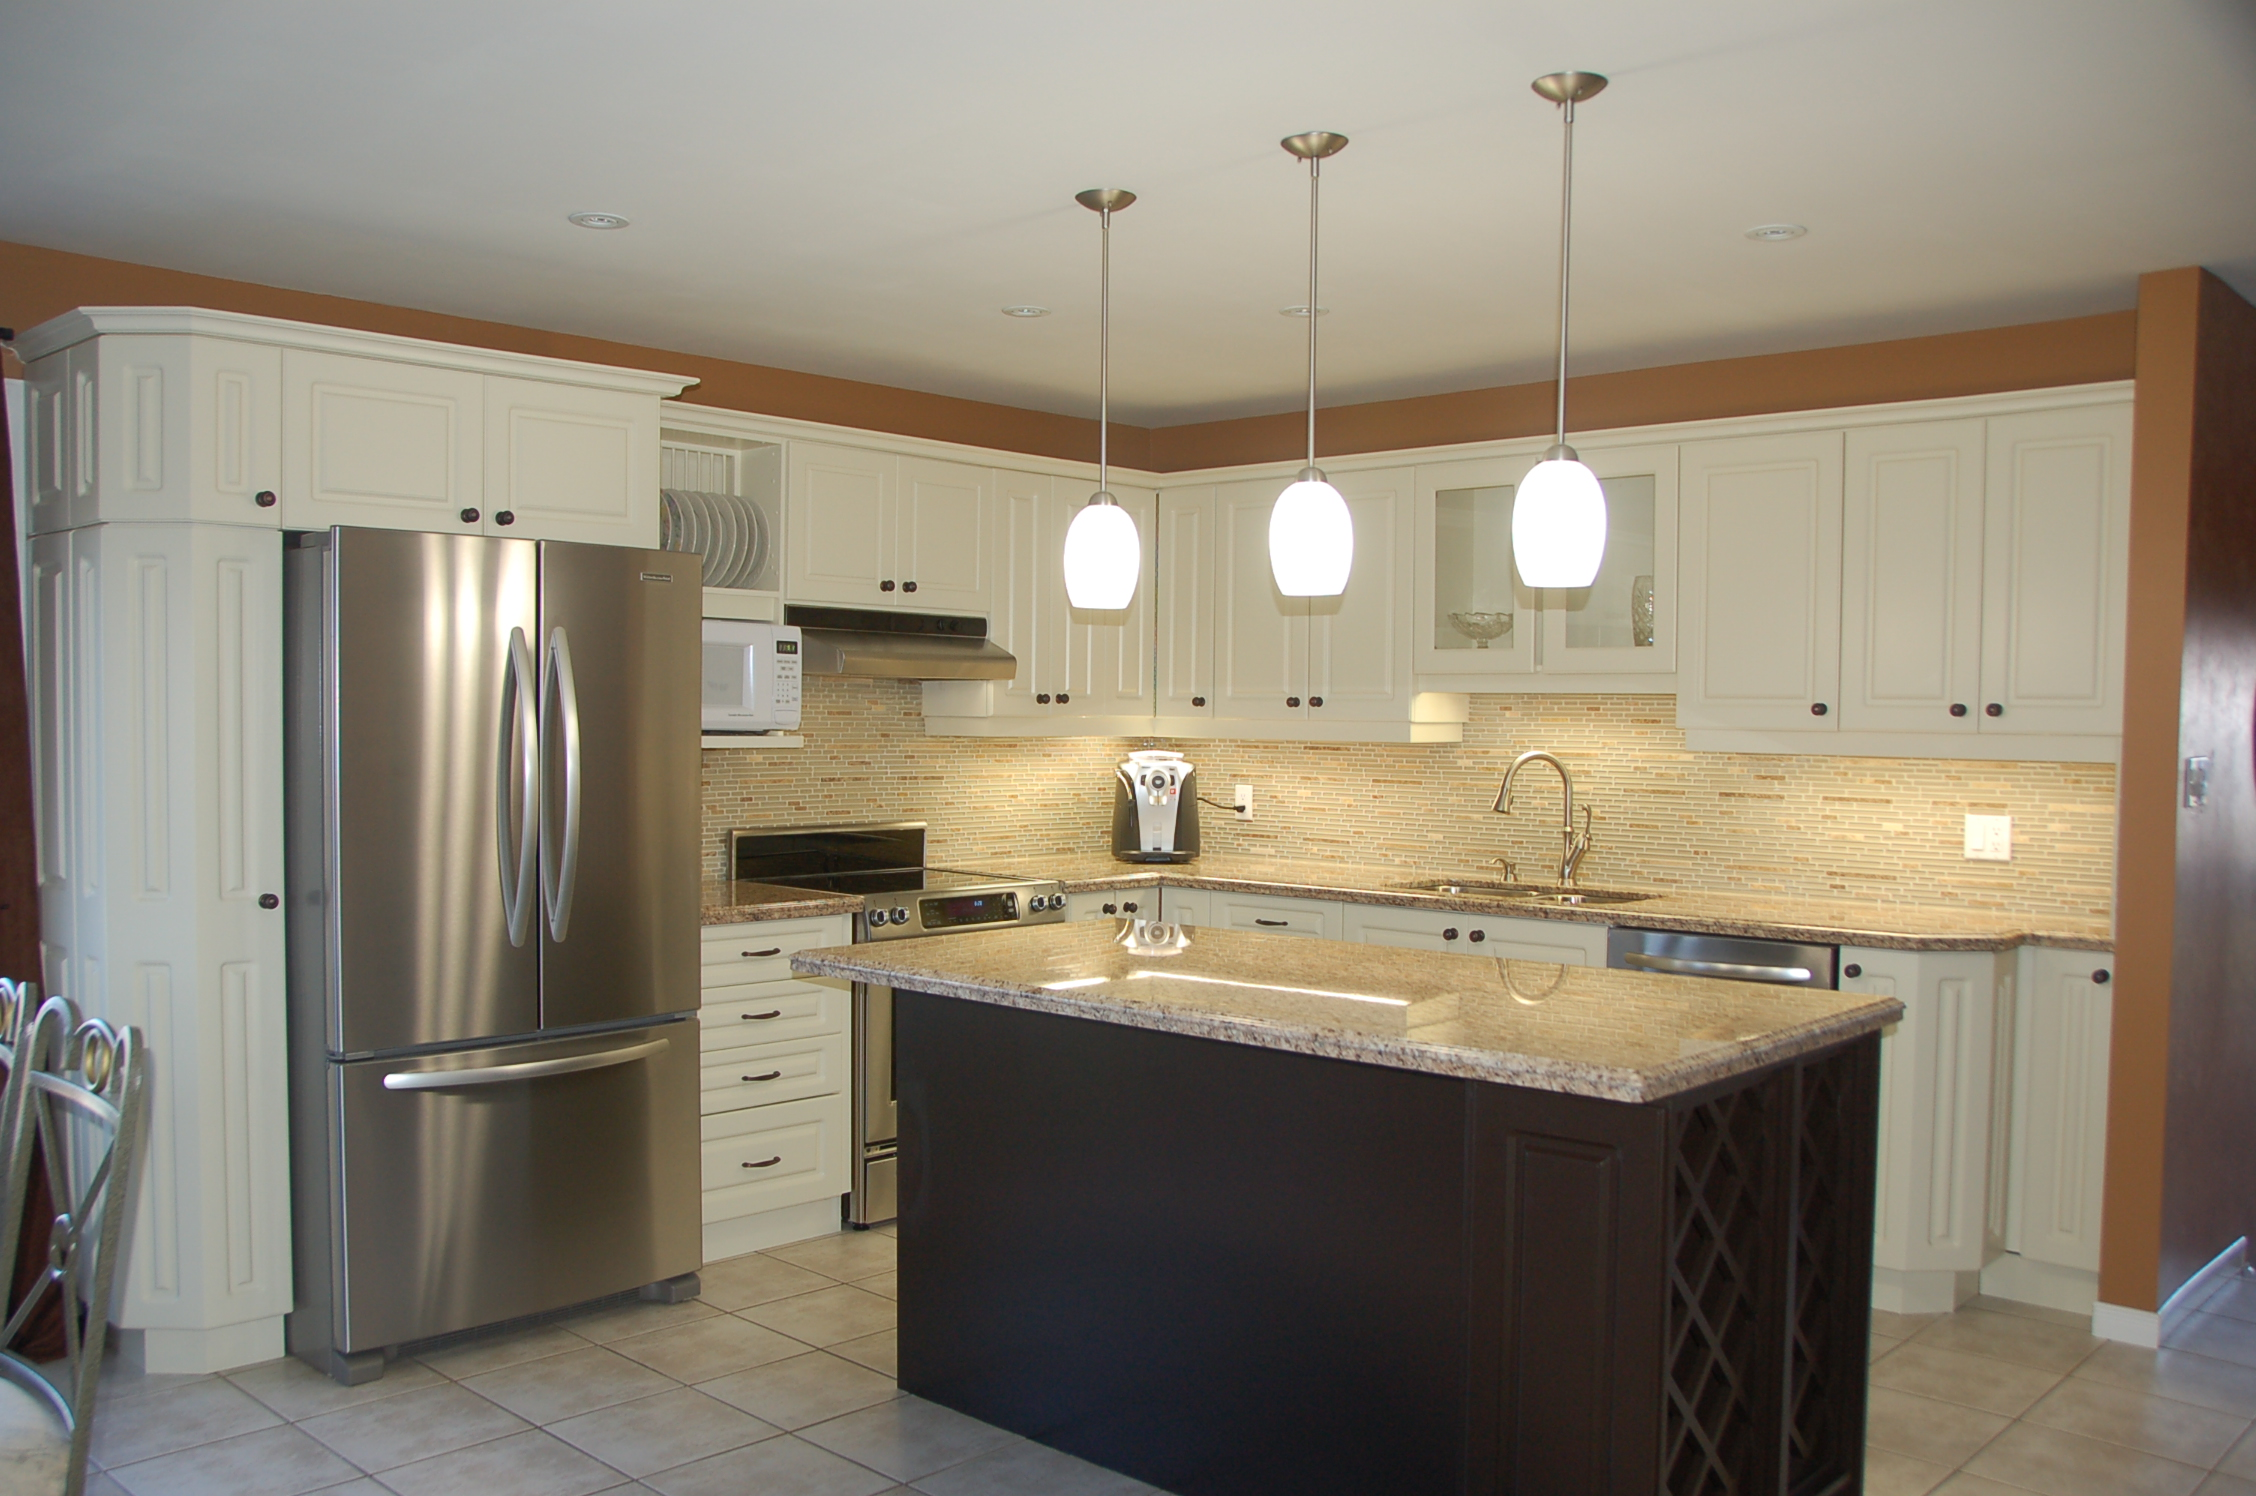 Restyled Kitchen - After